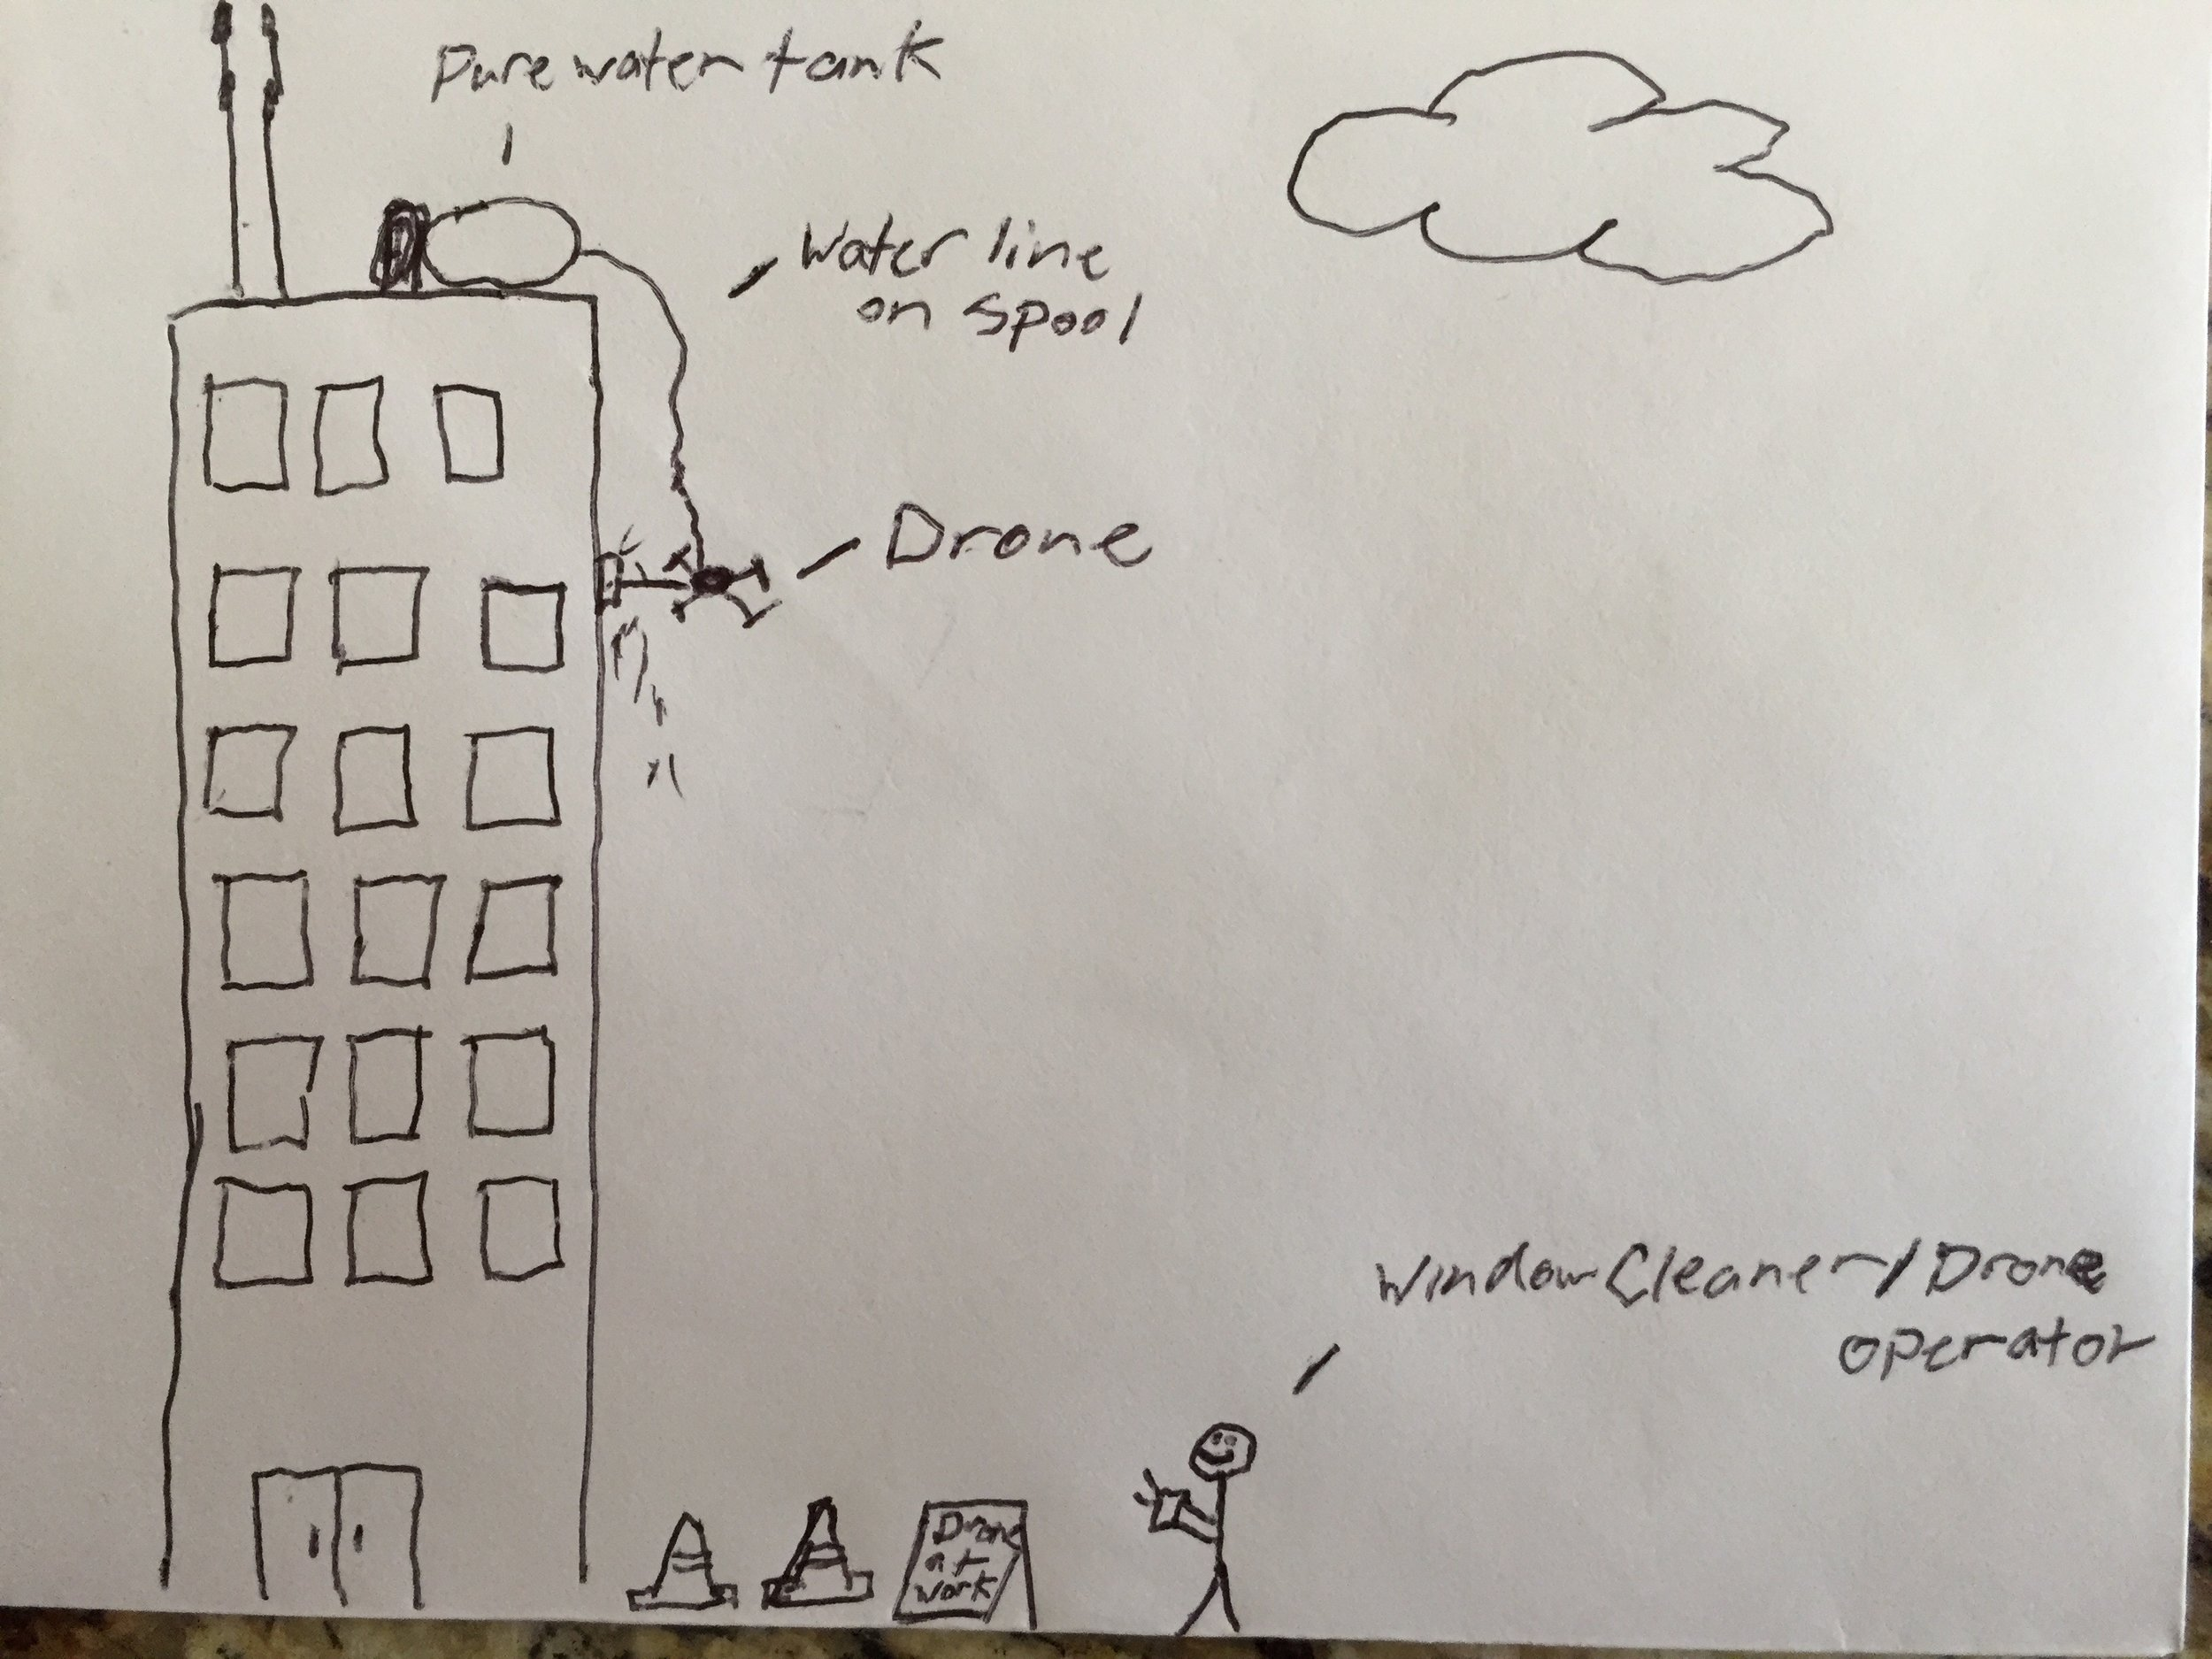 Rough sketch of a drone cleaning a building